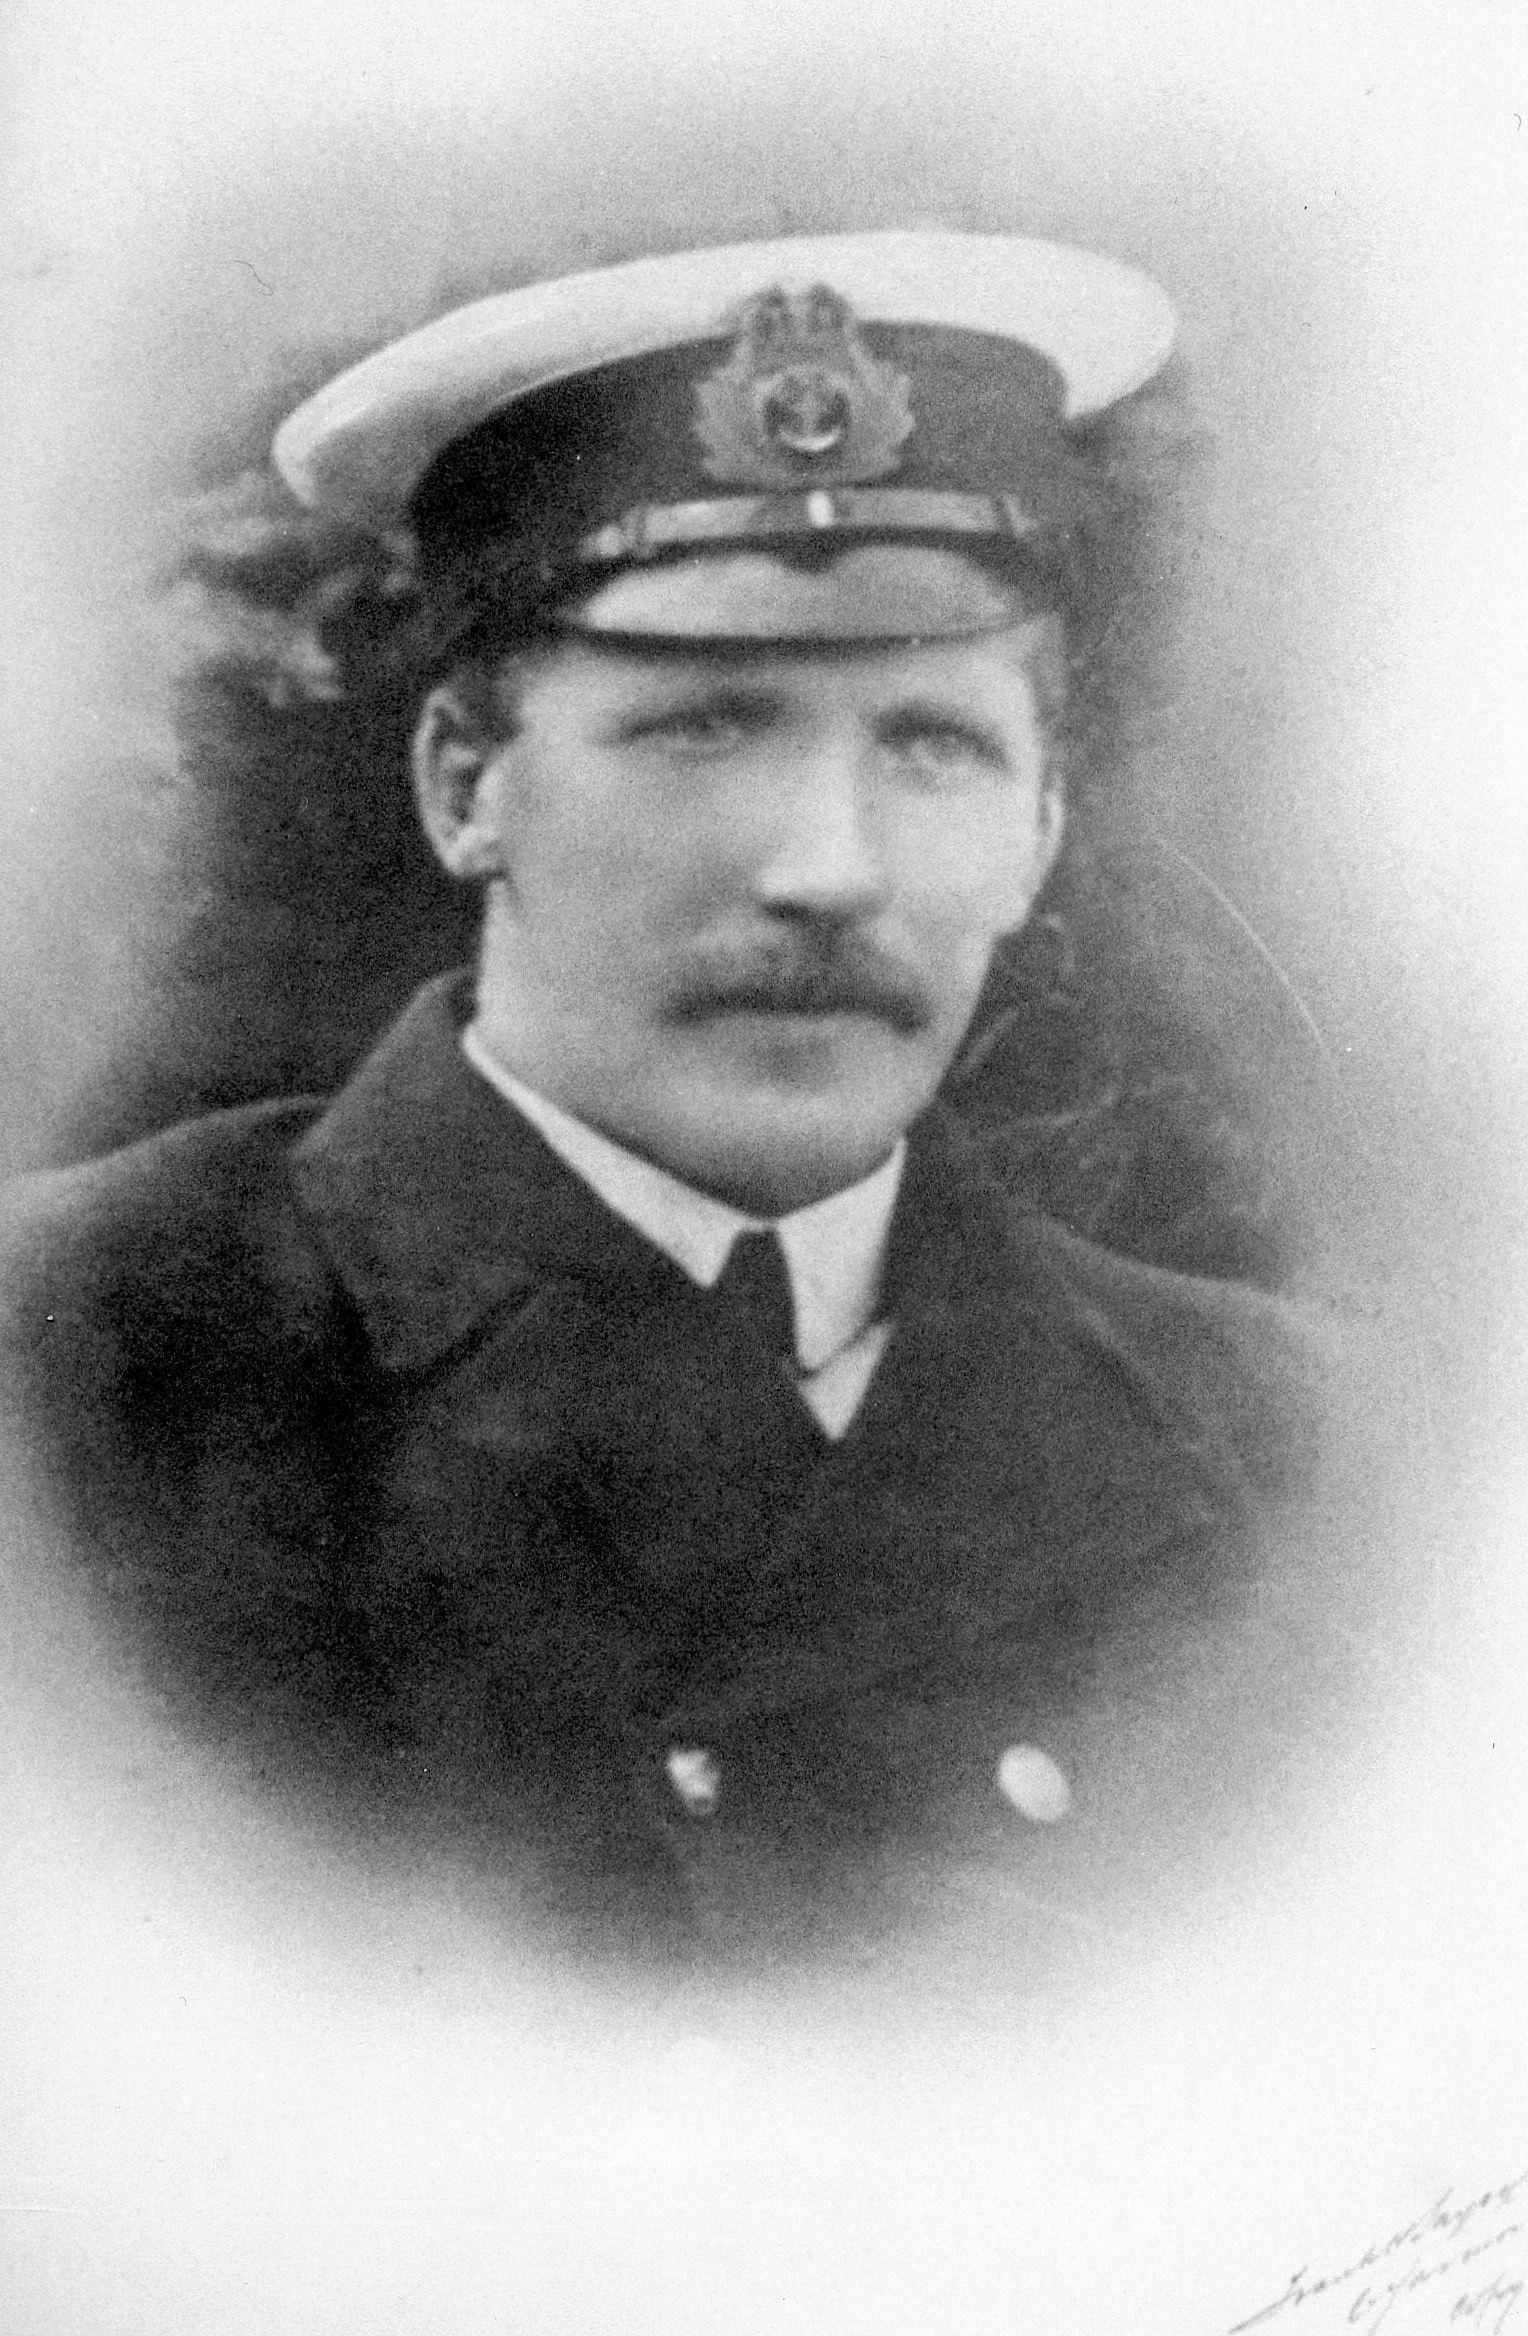 1916 Skipper Will Collin (1880-1918)